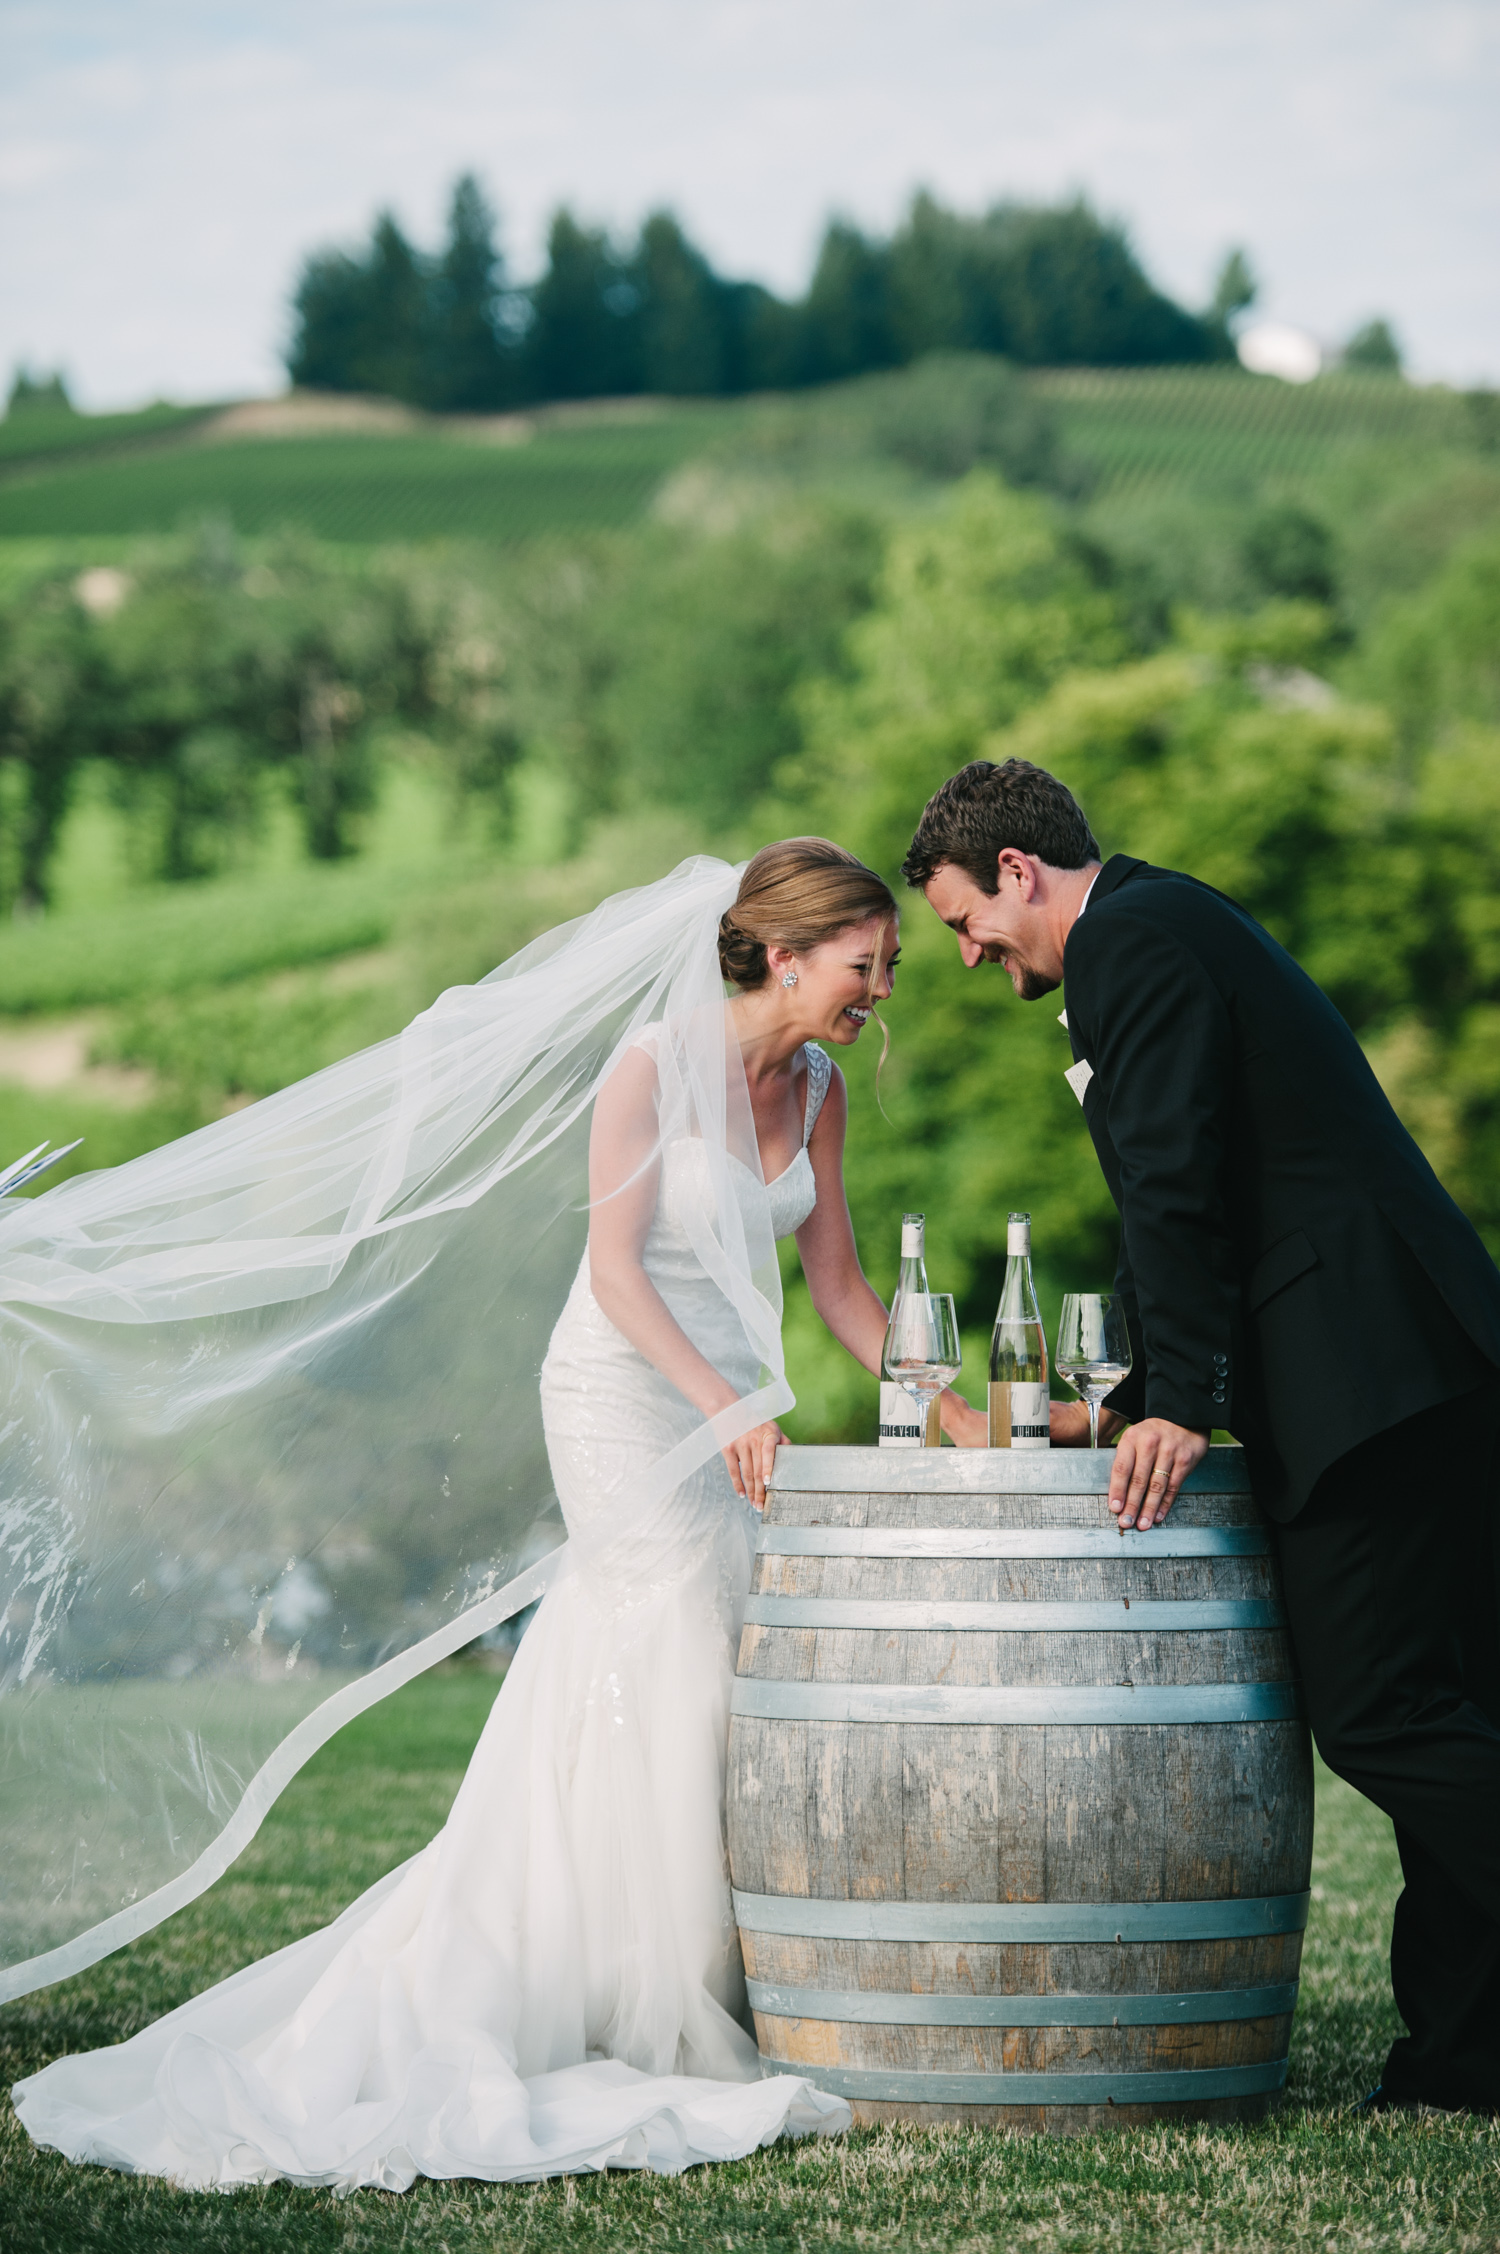 14-zenith-vineyard-wedding-portland-oregon-christa-taylor-photography.jpg